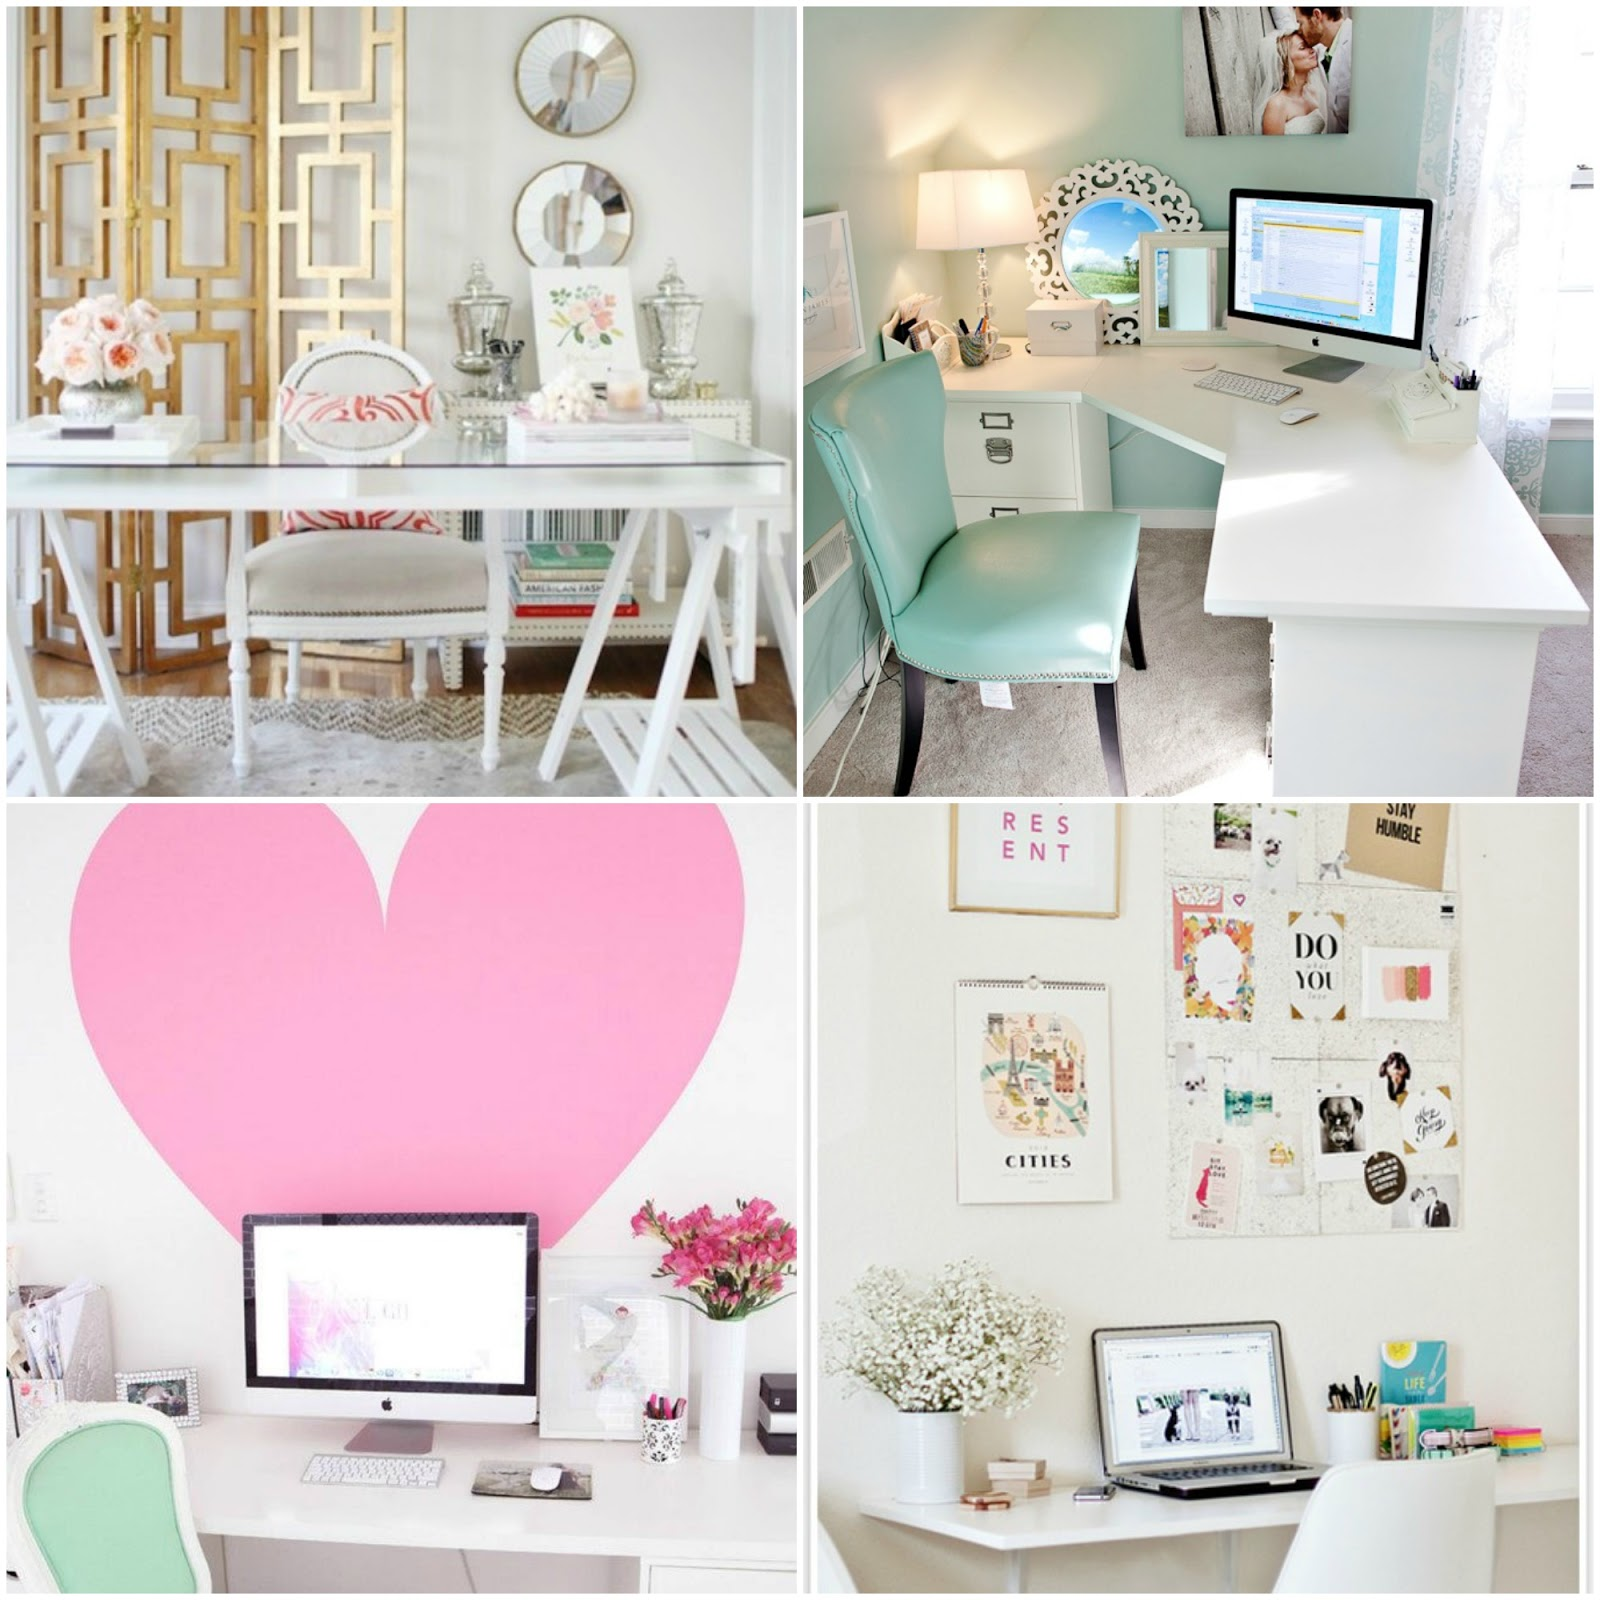 The southern thing home office inspiration for Home office inspiration pictures